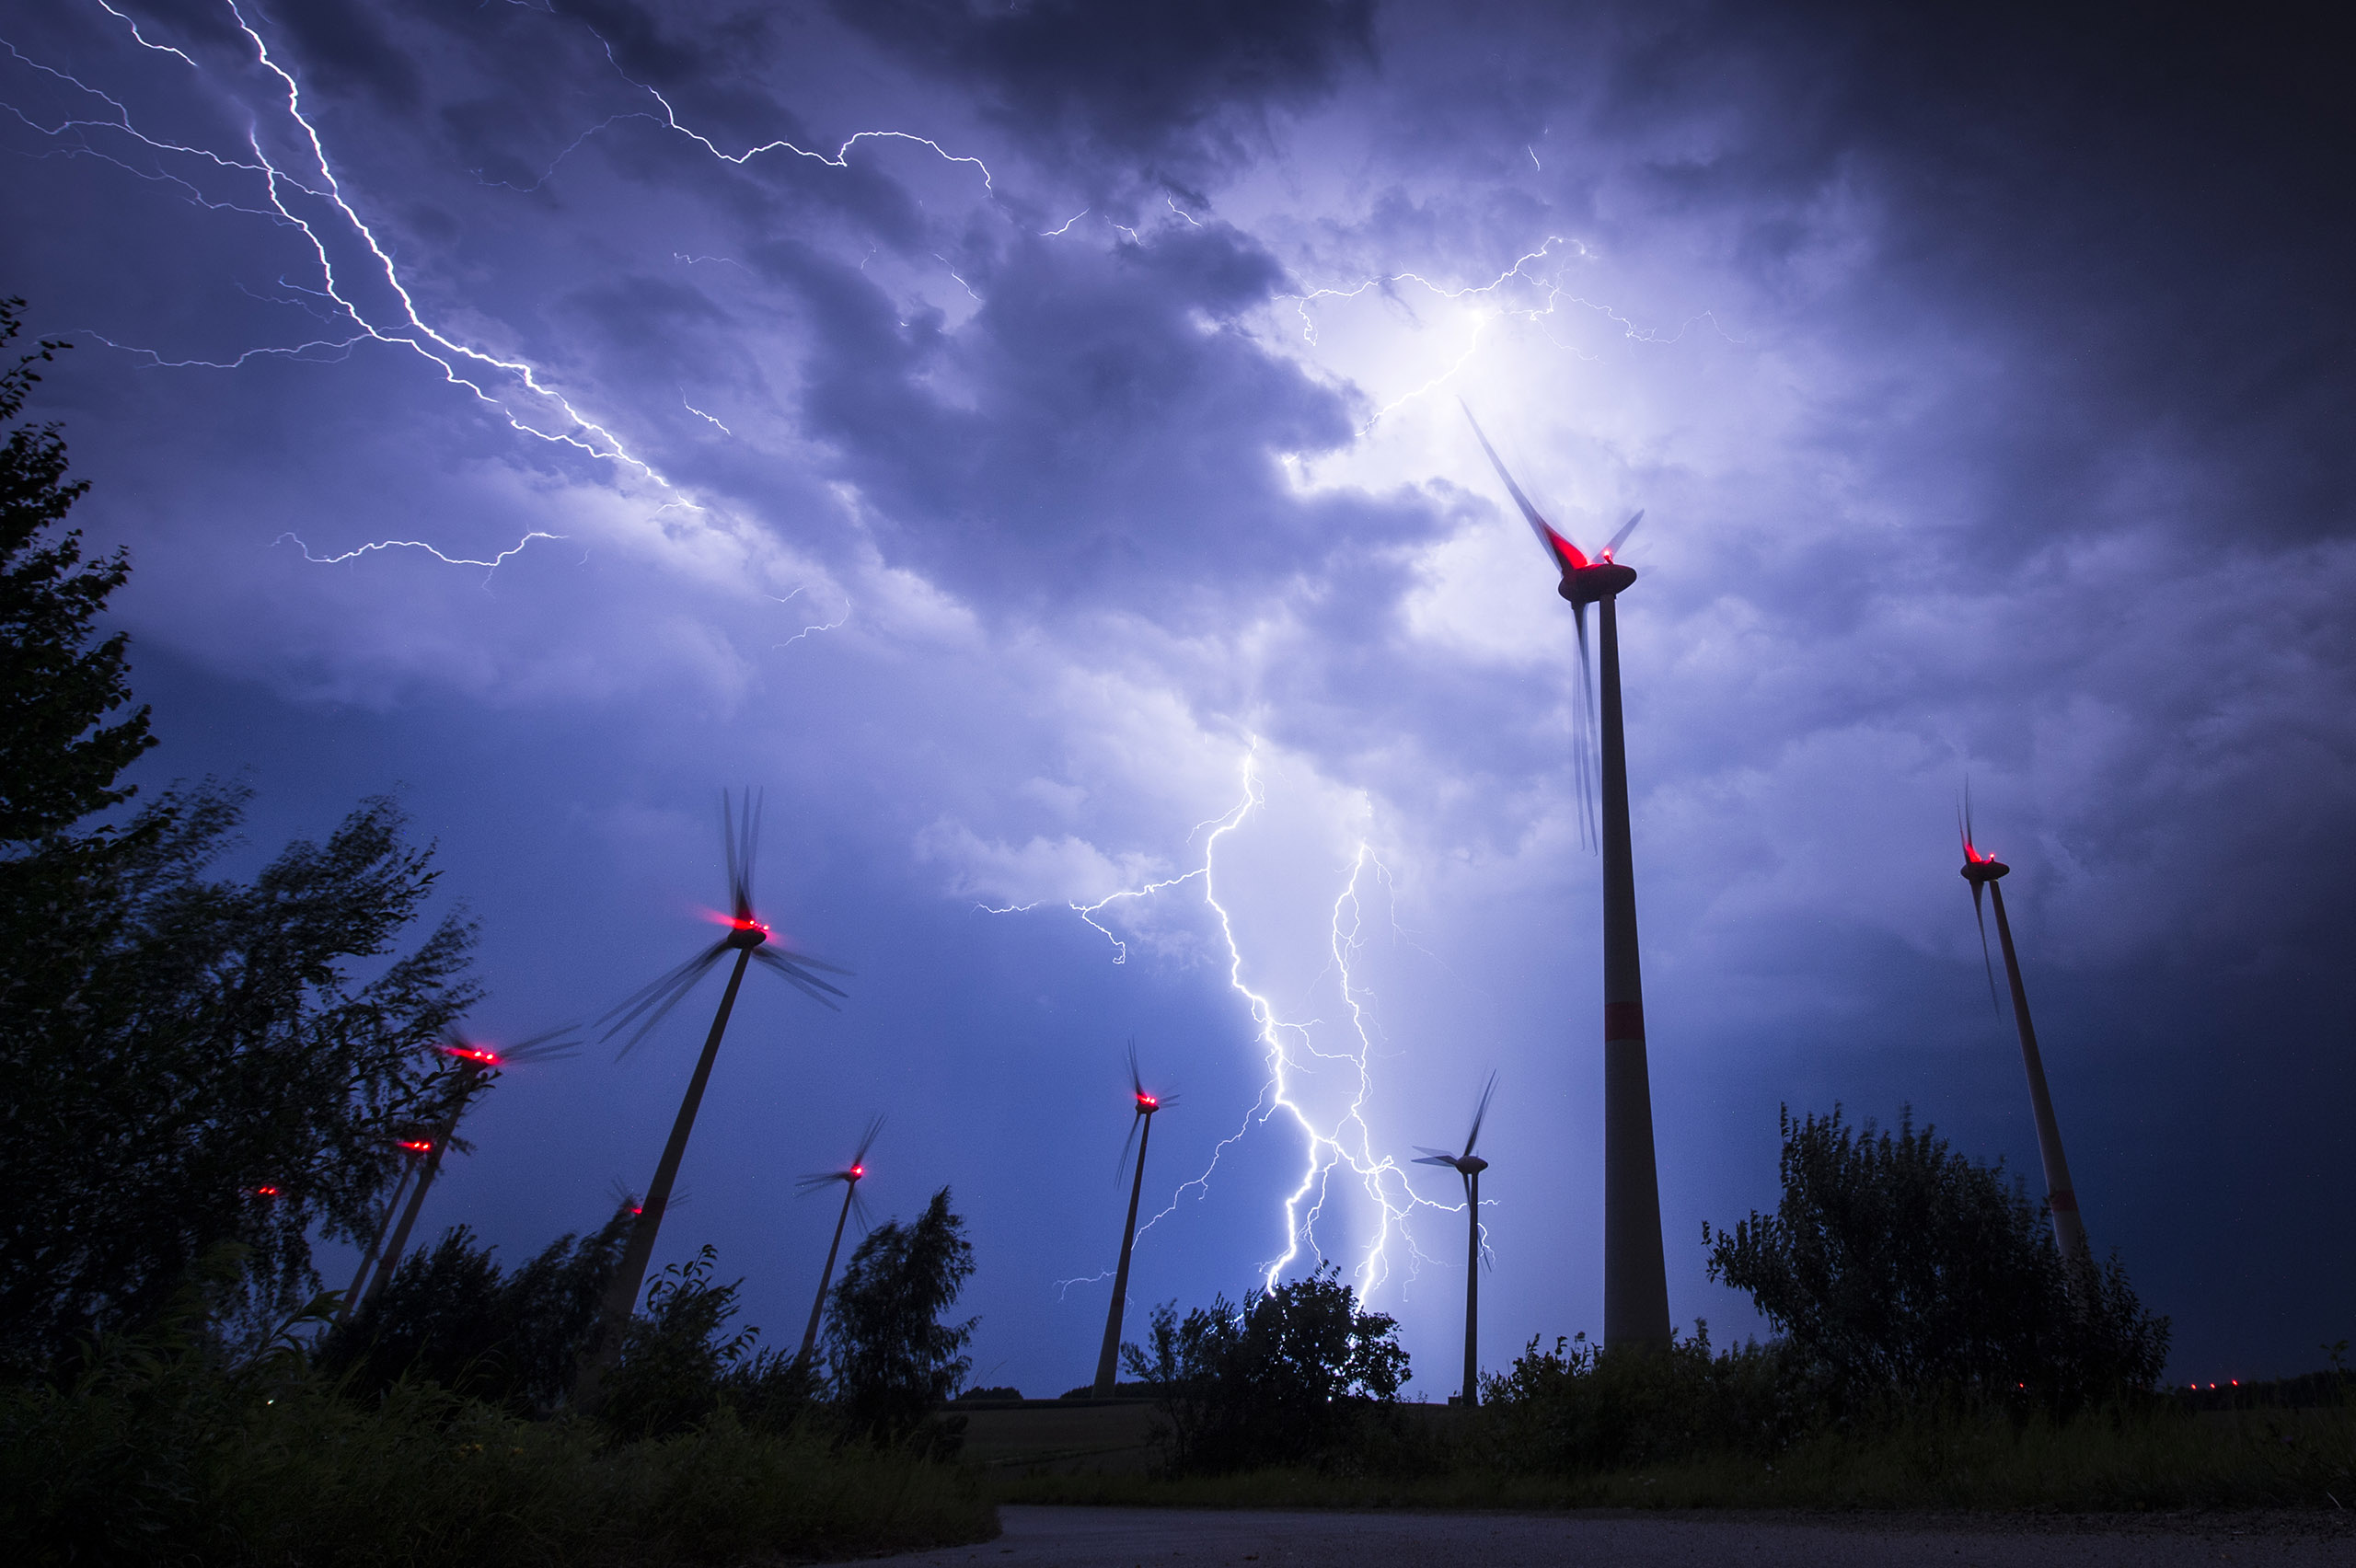 Lightning strikes behind wind turbines during a thunderstorm in Goerlitz, Germany, on Aug. 28, 2016.